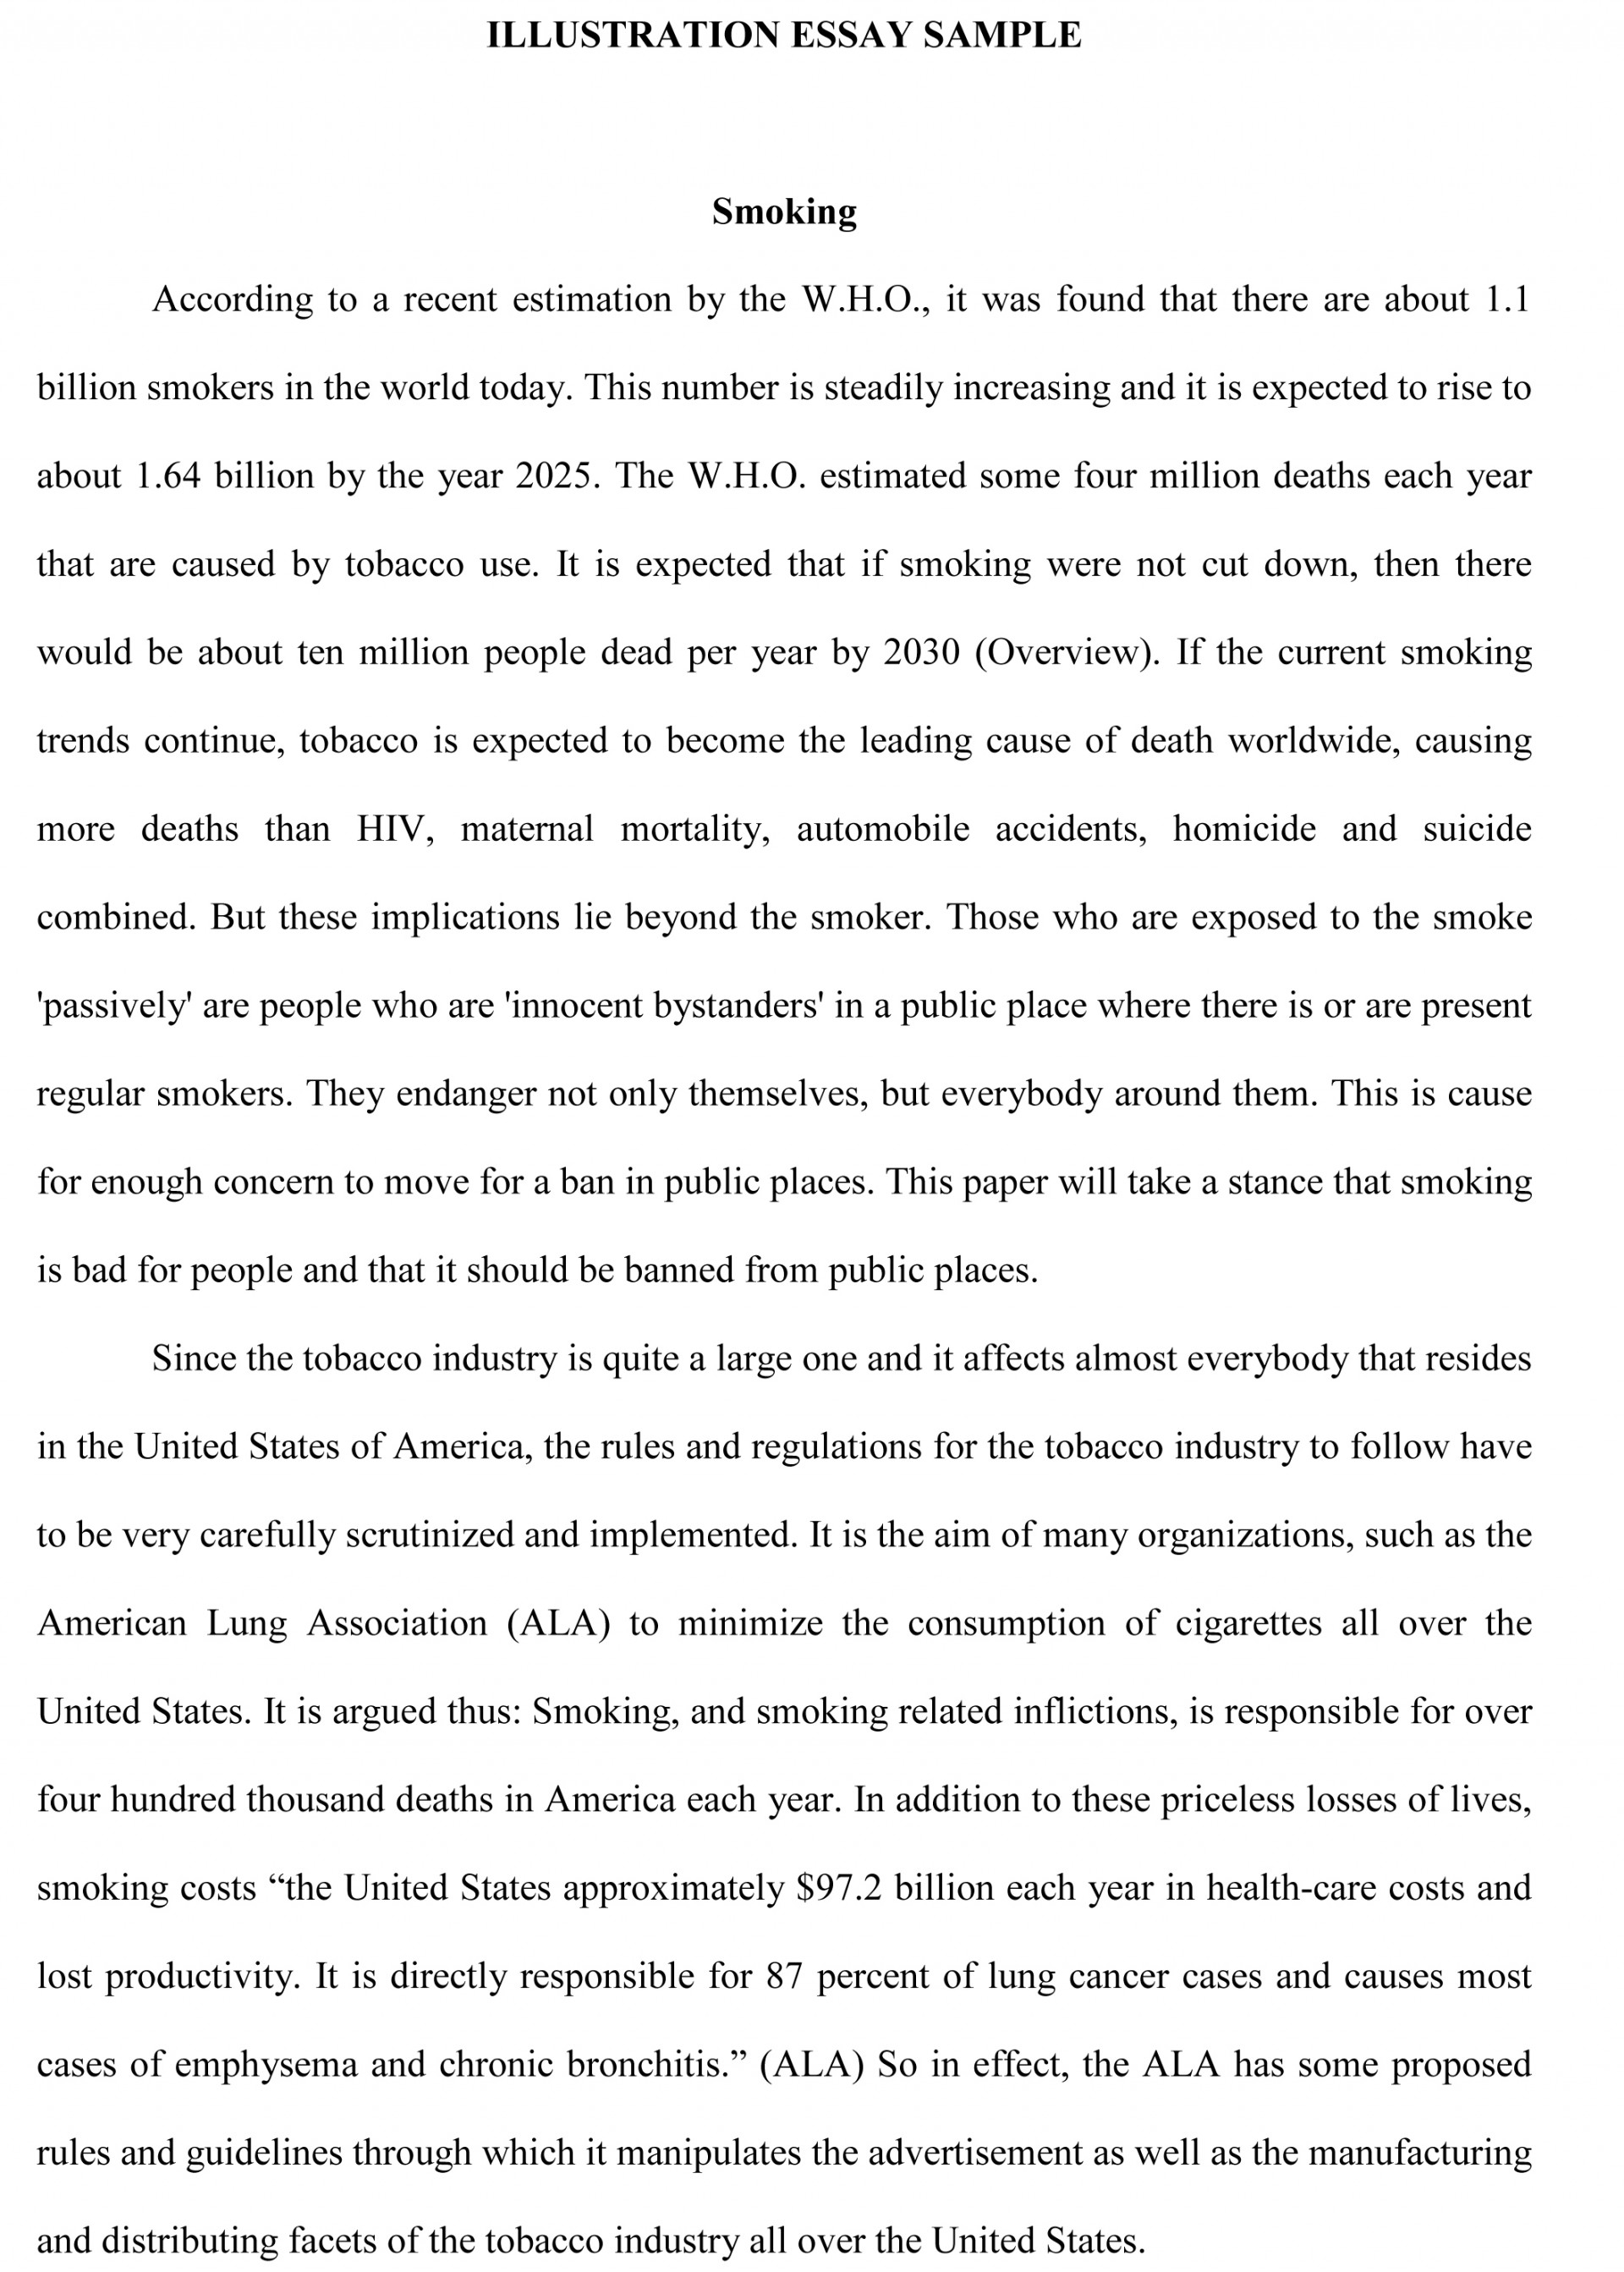 015 Essay Example Formal Illustration Sample Stunning Short Letter 1920